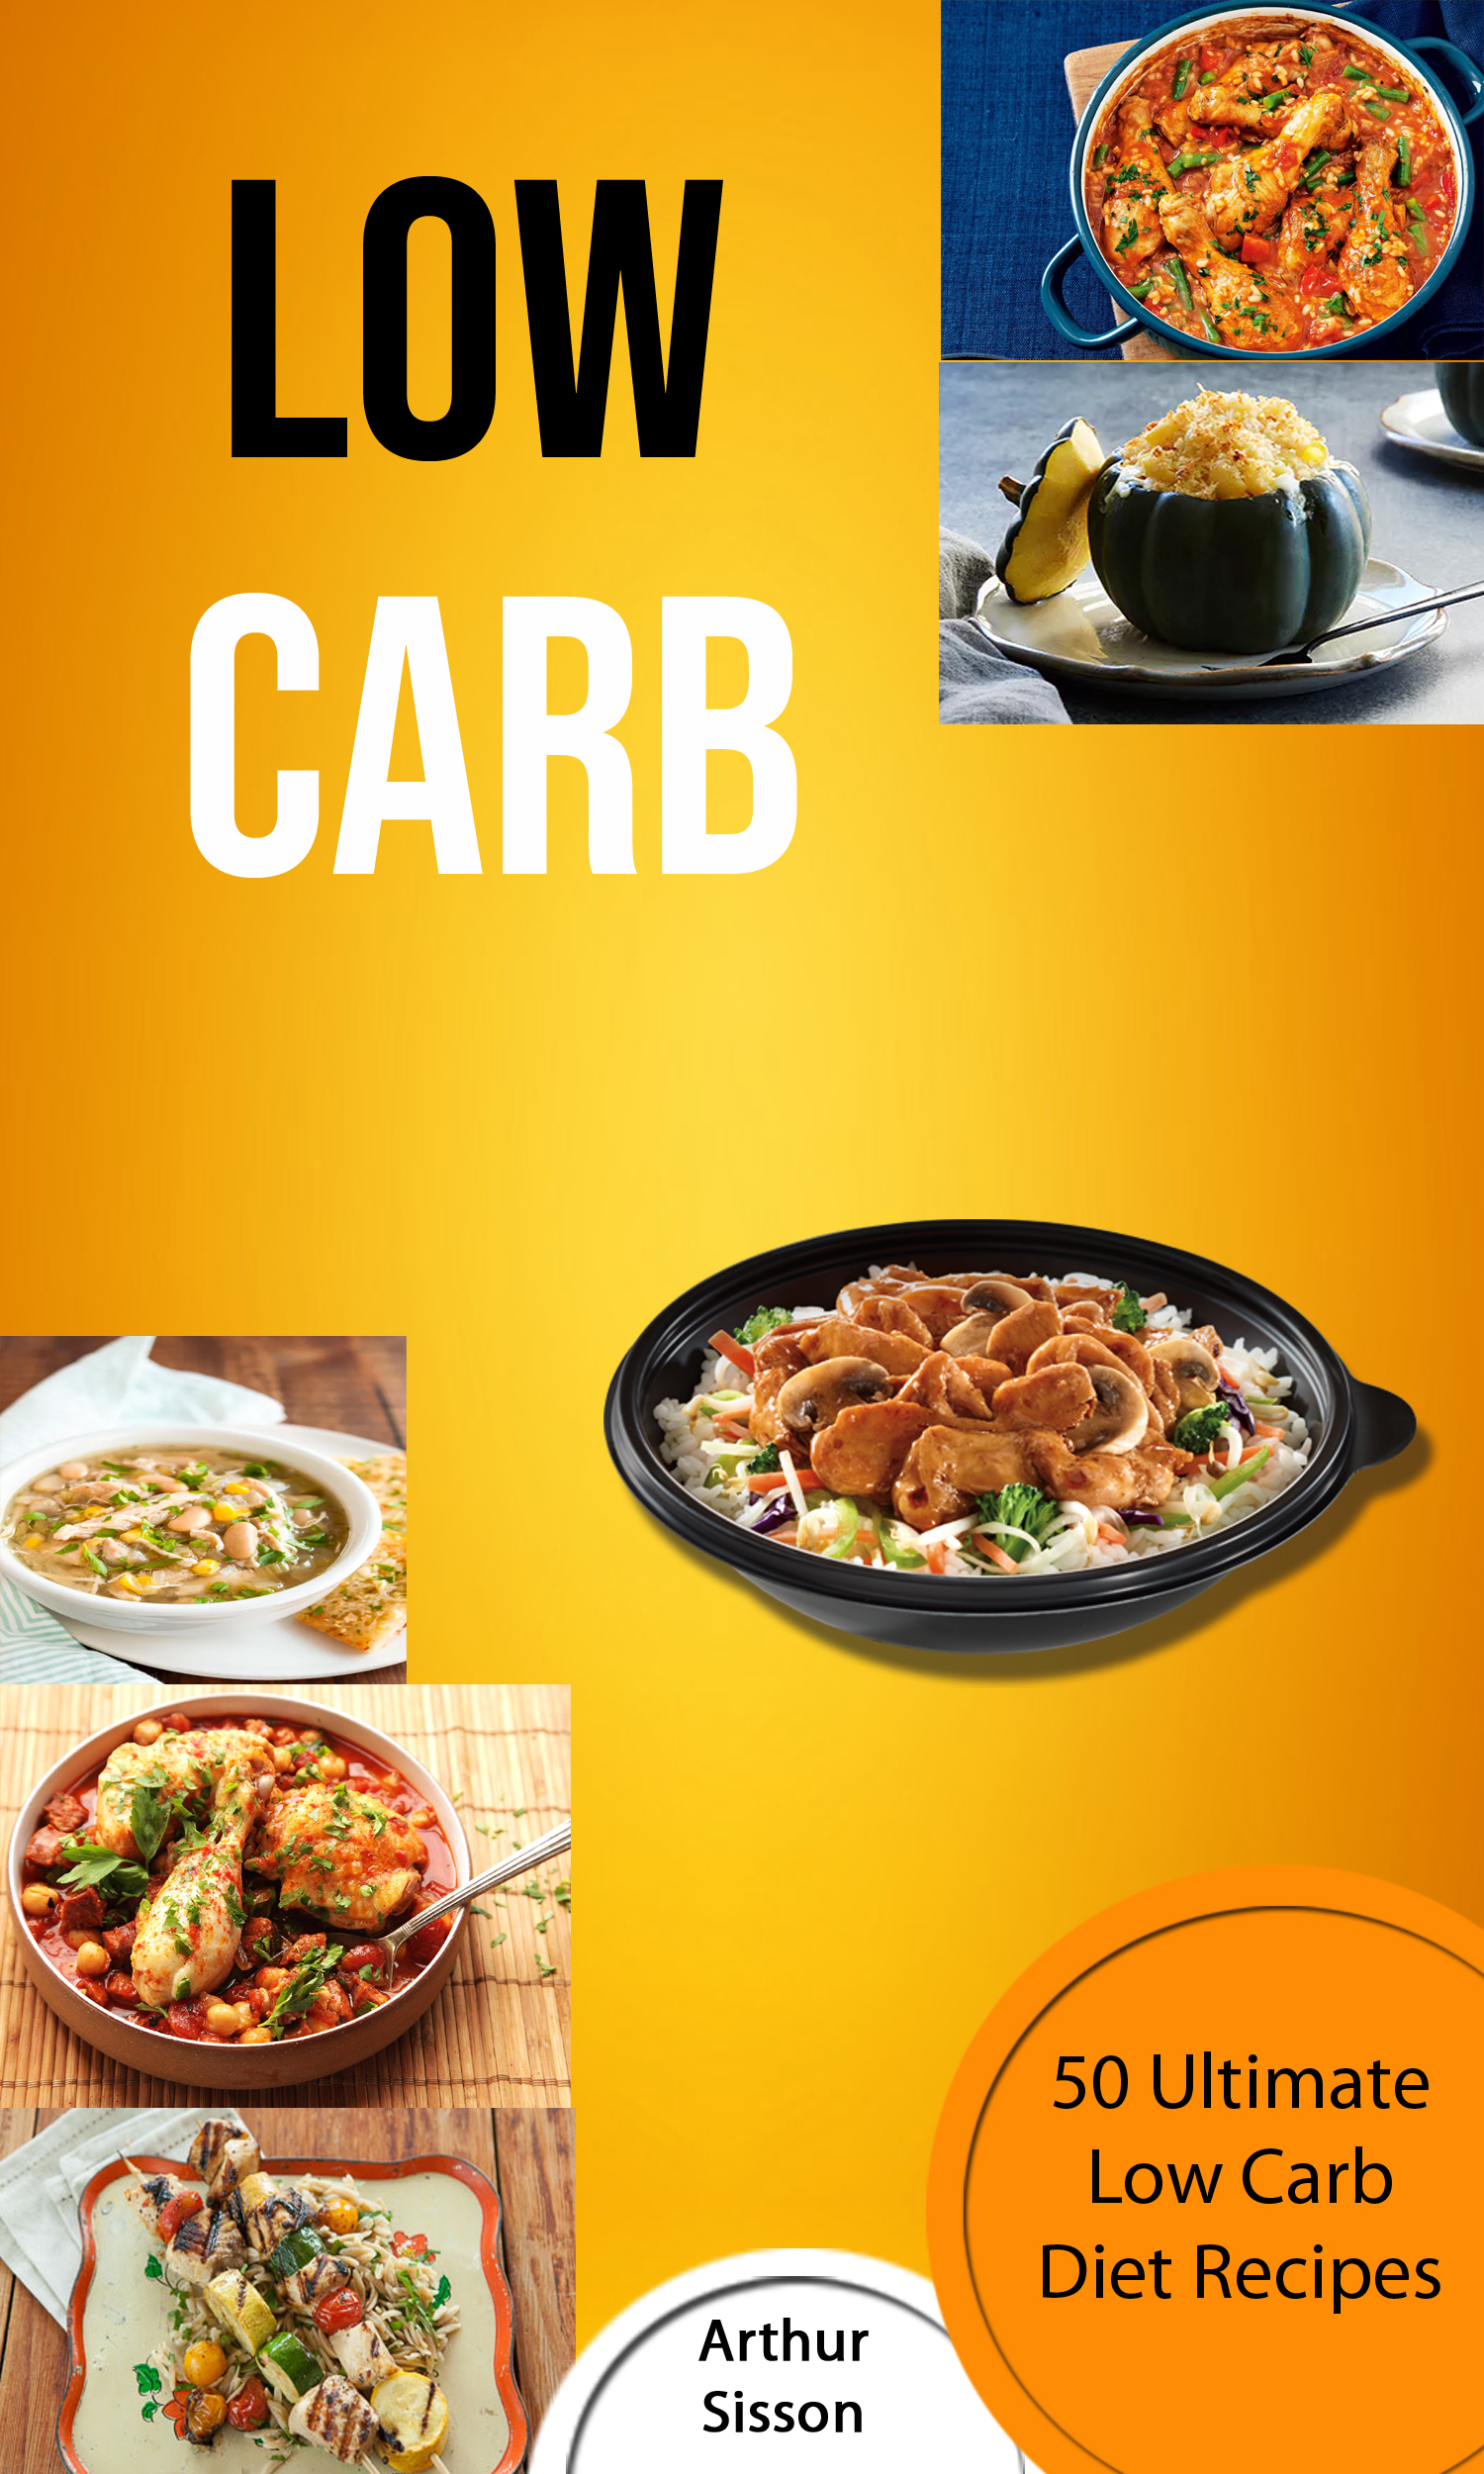 Low carb: 50 ultimate low carb diet recipes